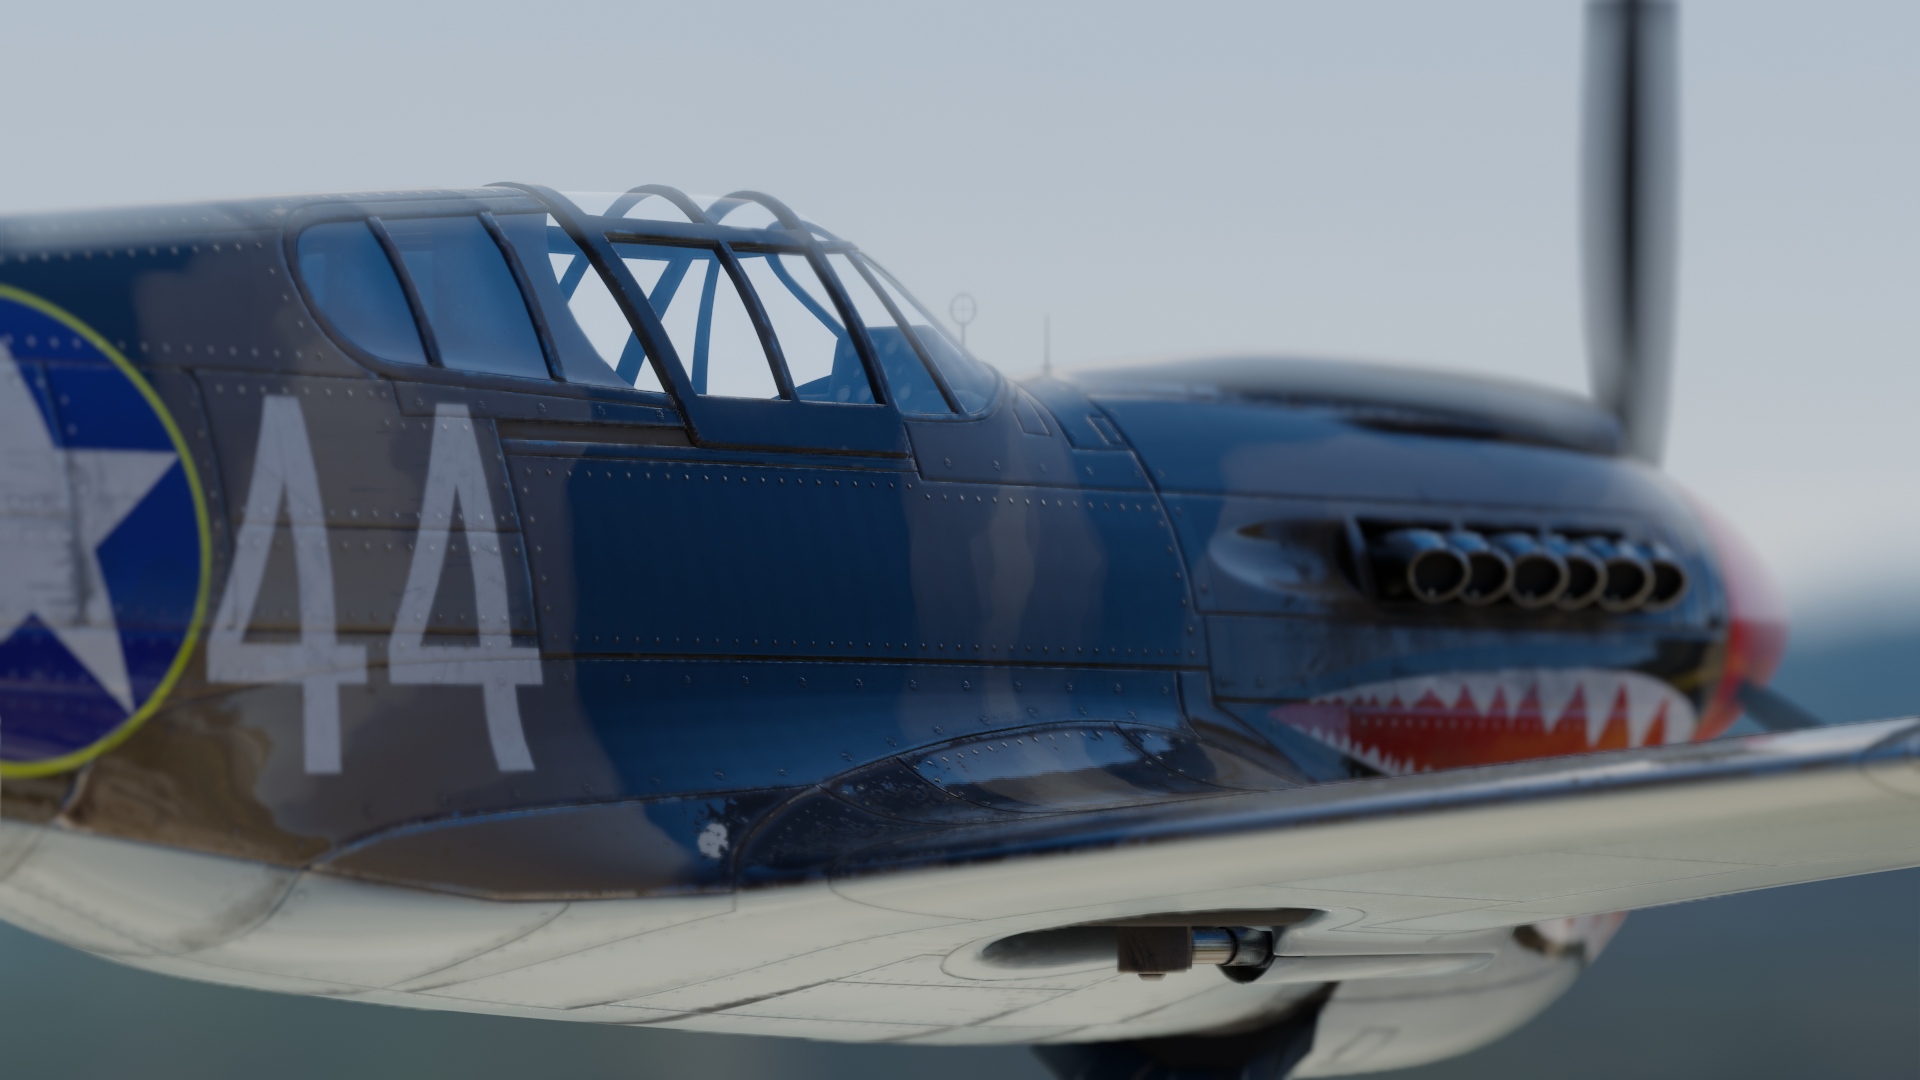 P40 Warhawk preview image 7